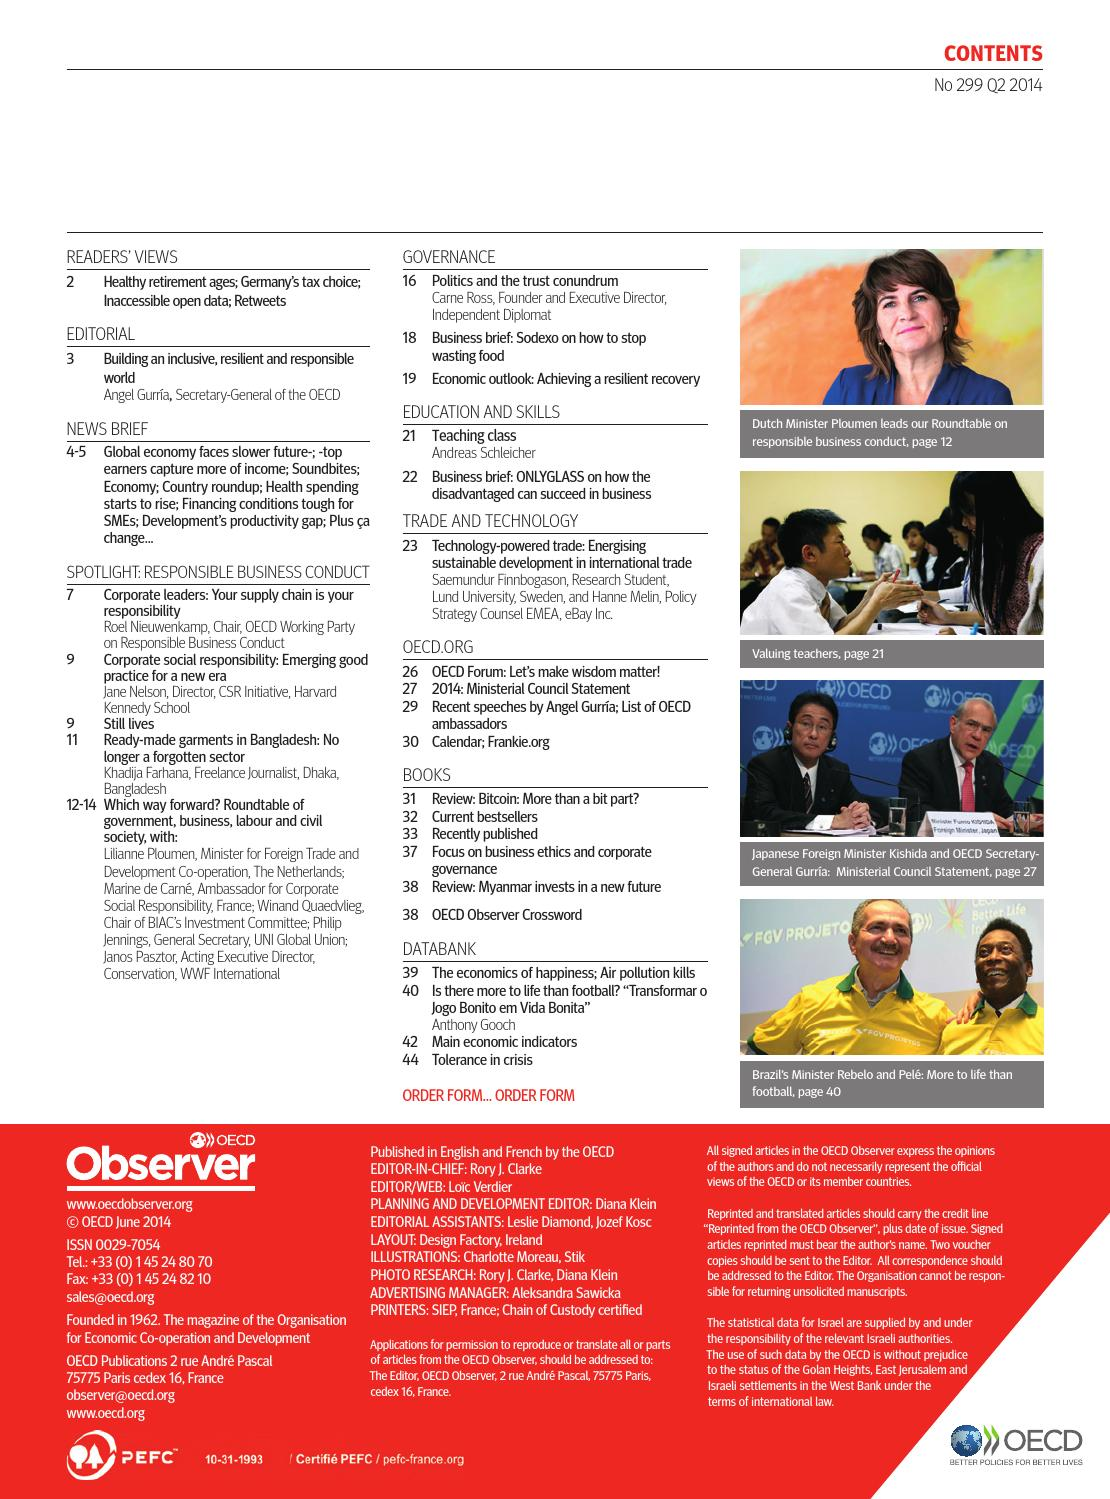 OECD Observer No 299 Q2 2014 by OECD - issuu 73482d1ac